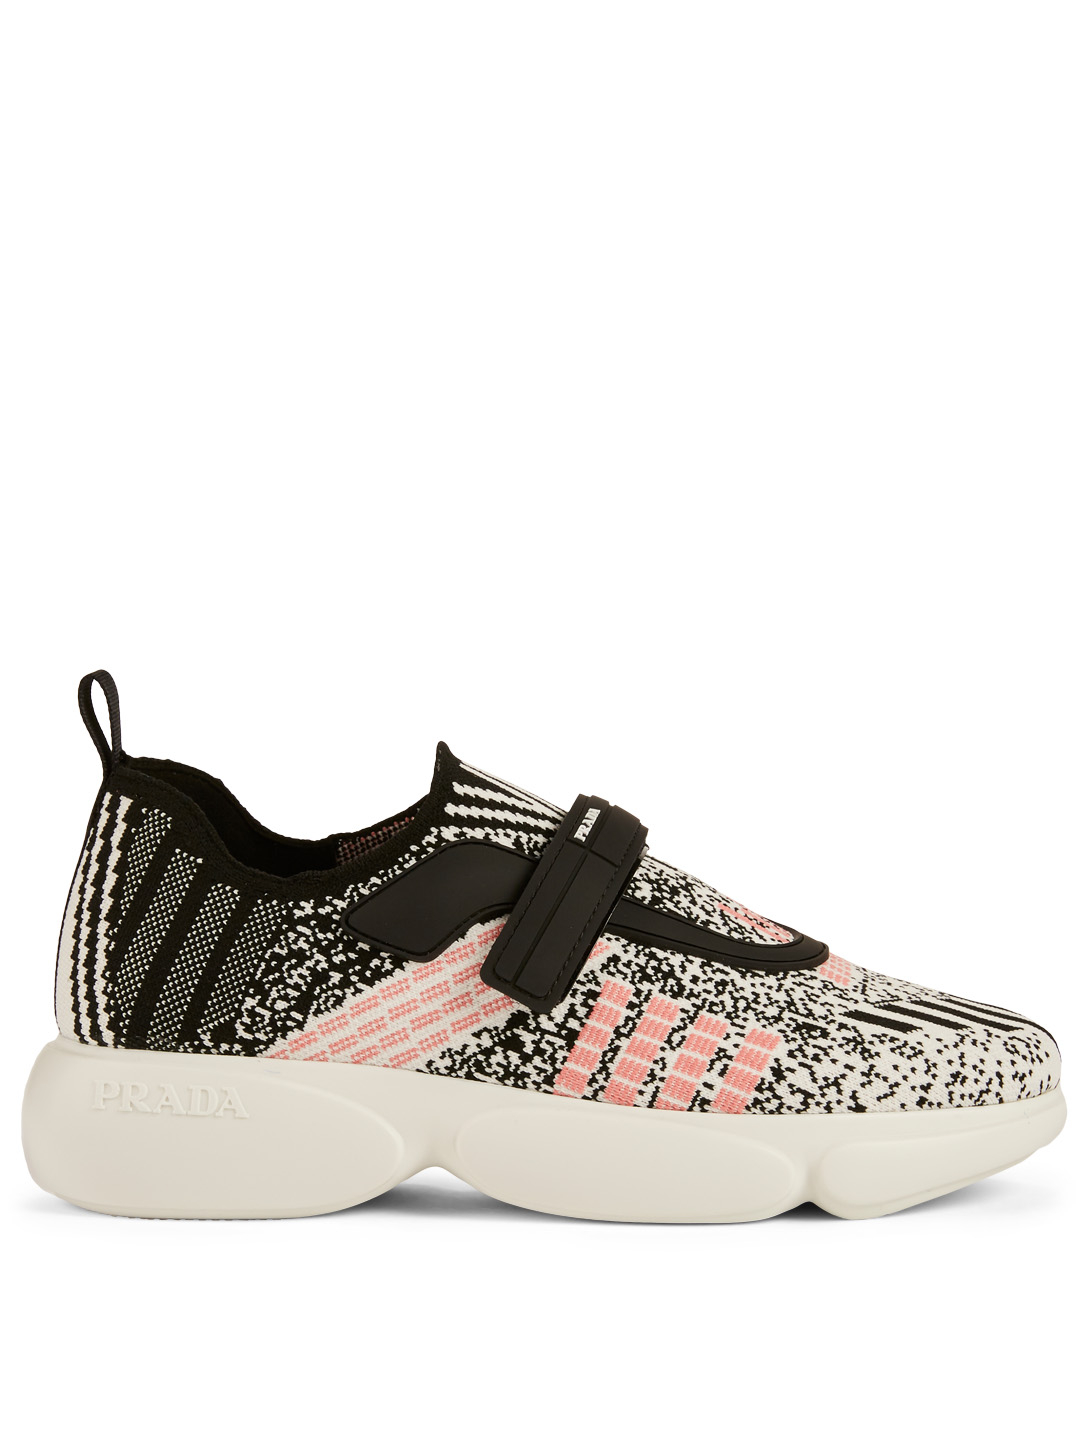 PRADA Cloudbust Geometric Knit Sneakers Women's White